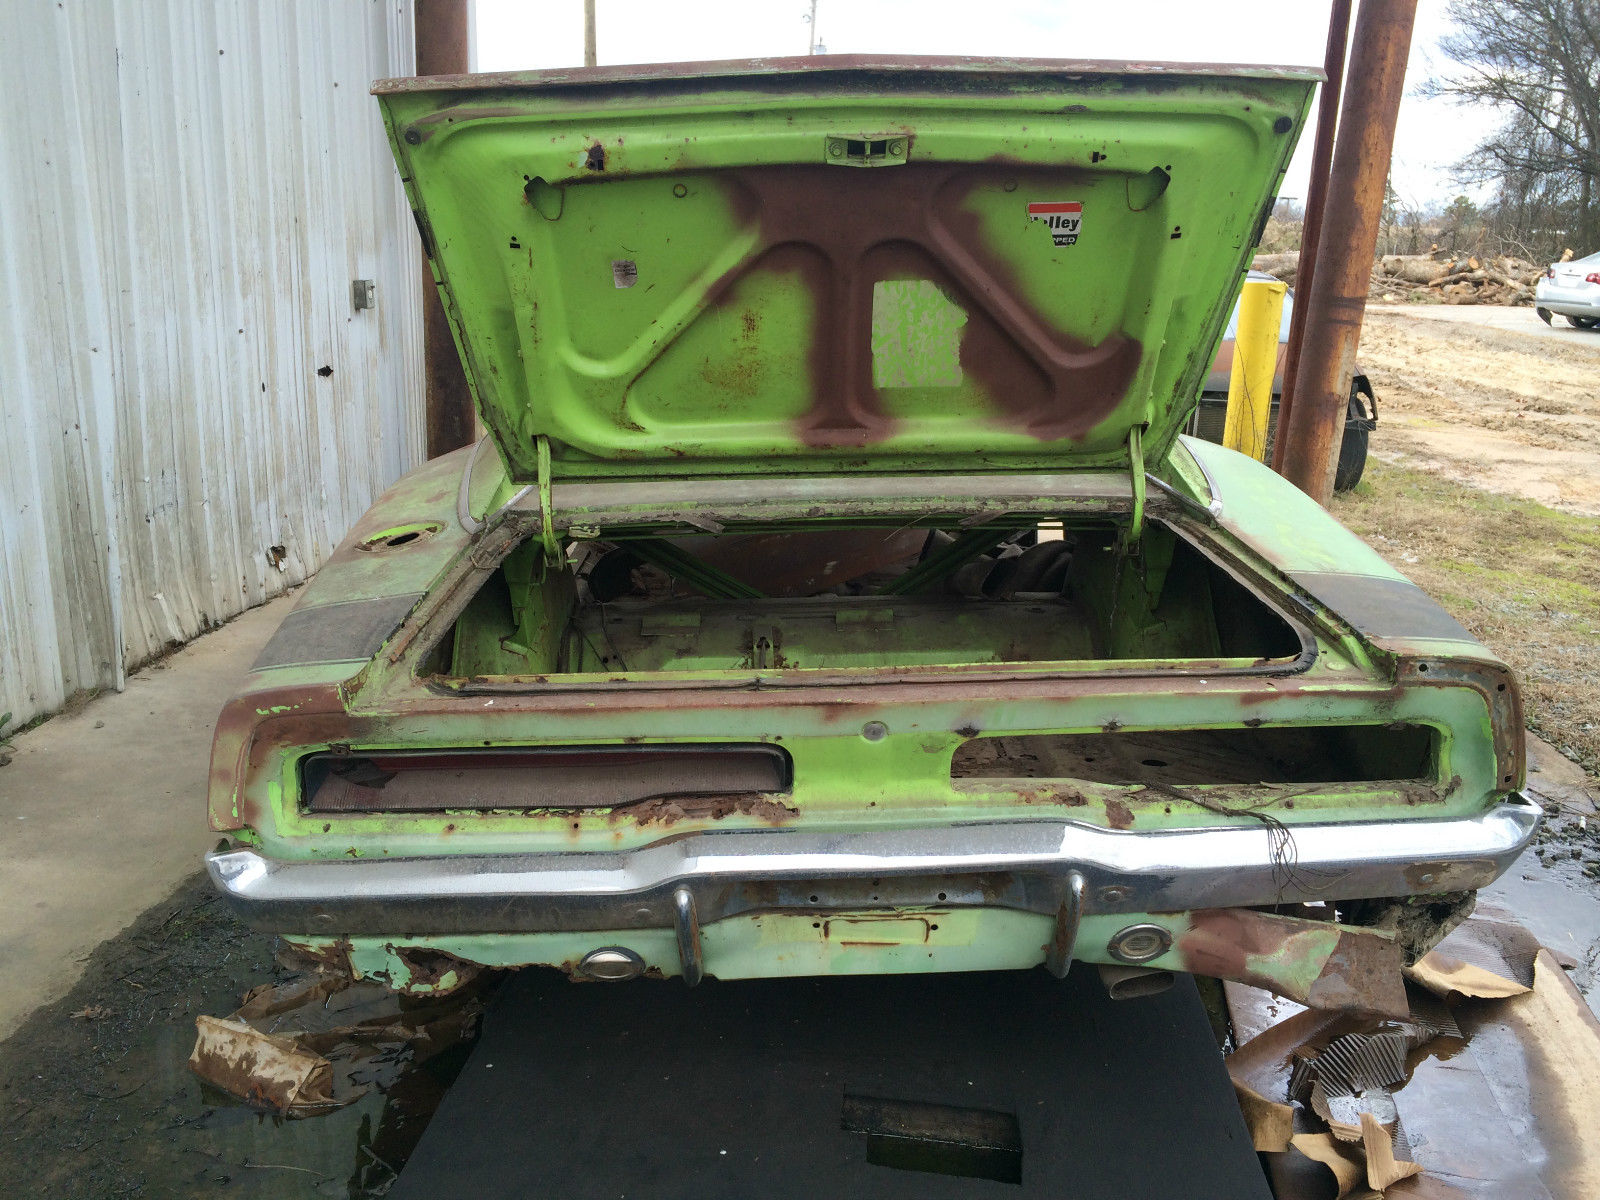 1970 dodge charger r t lime green project 440 1968 1969 classic dodge charger 1970 for sale. Black Bedroom Furniture Sets. Home Design Ideas